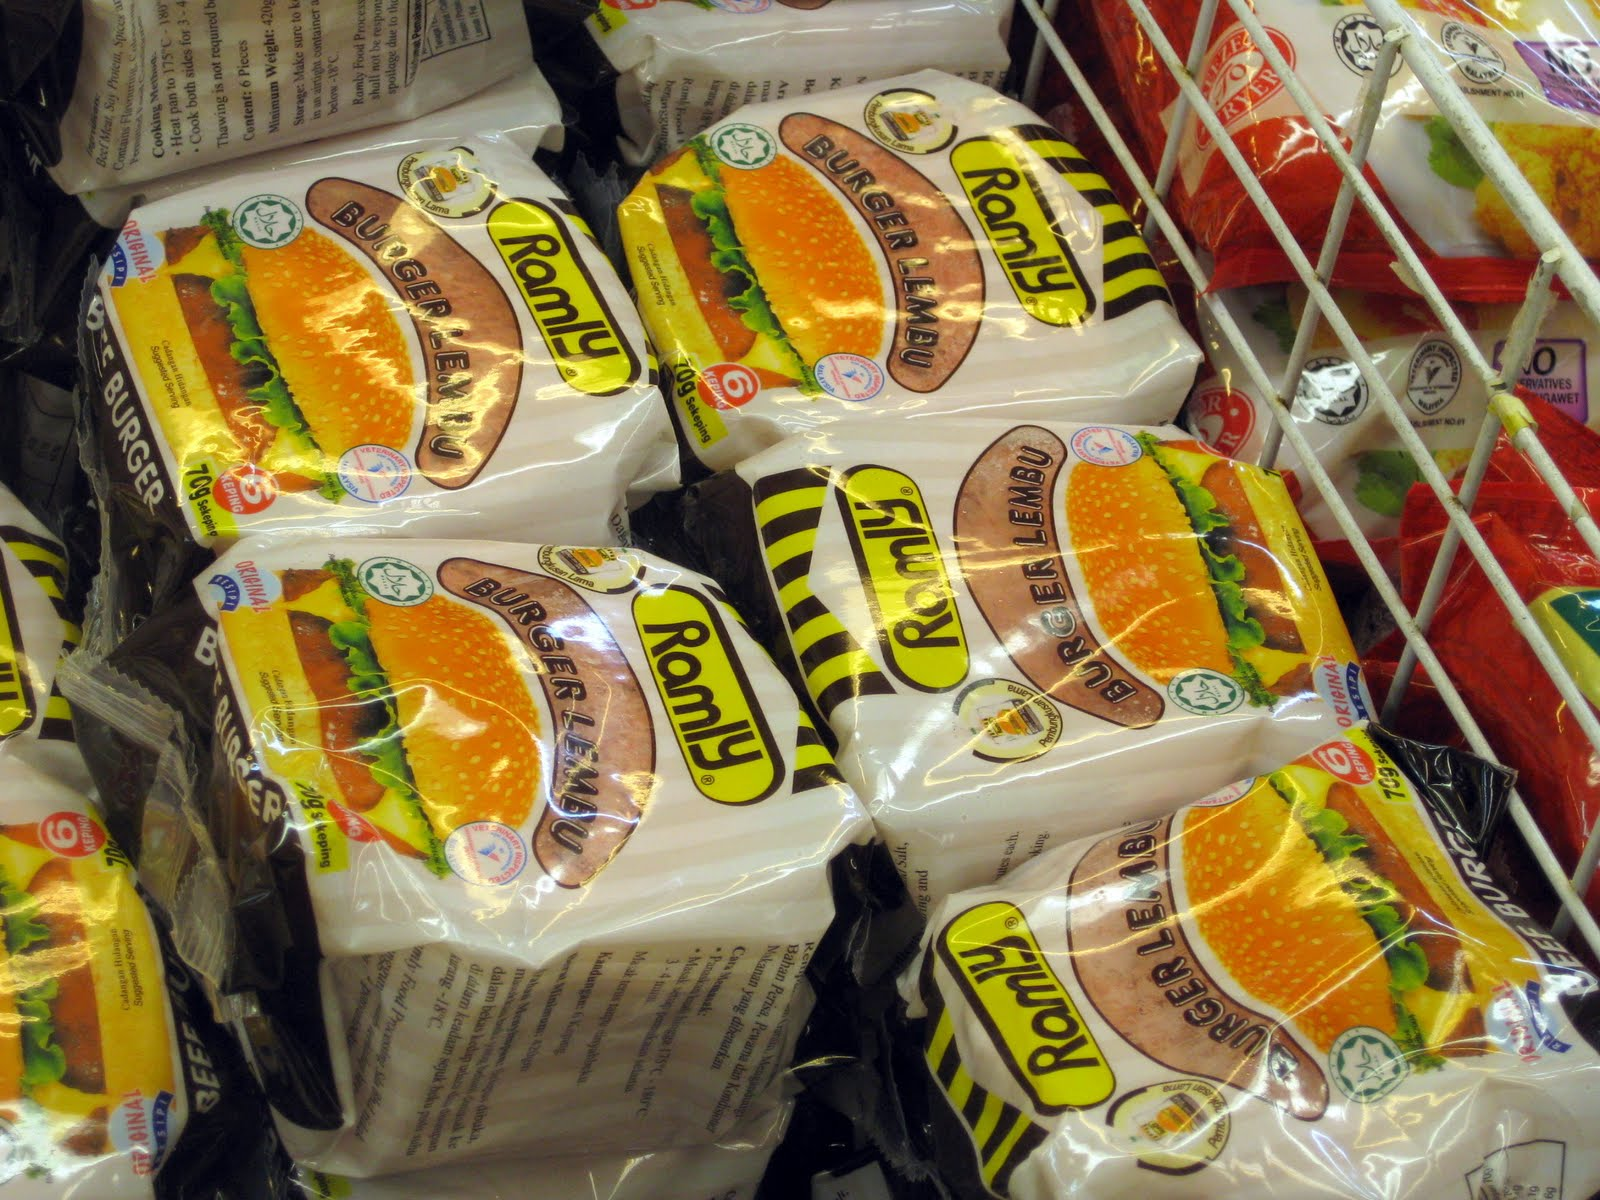 Ramly Burgers, Egg-Wrapped Burgers from Malaysia